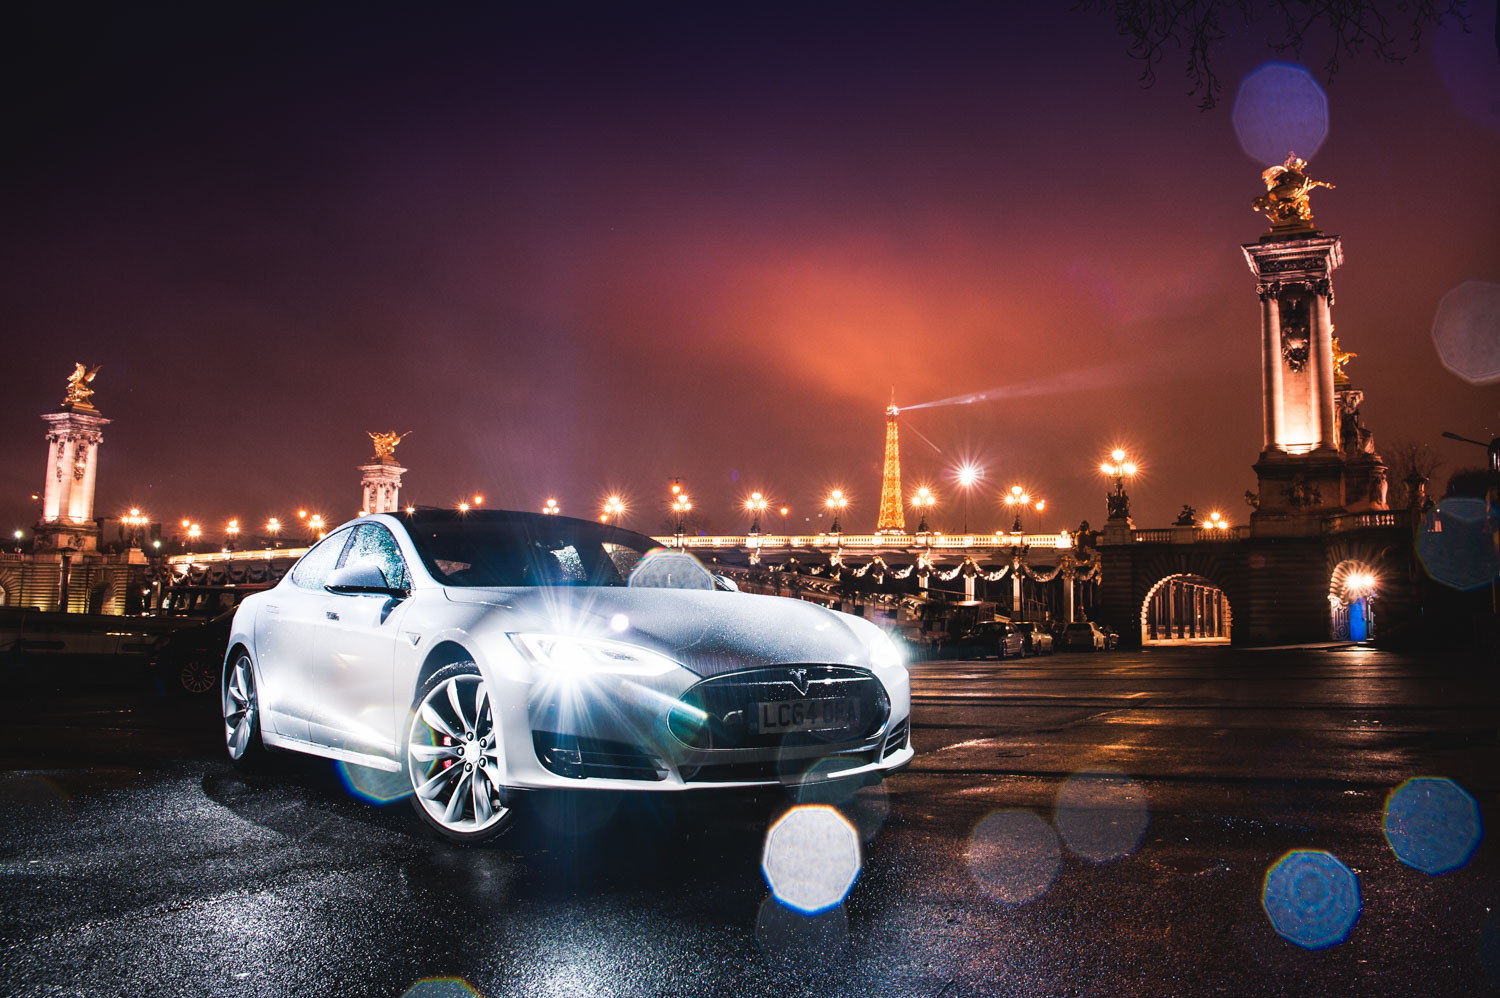 Jayson-Fong-Photography-Tesla-Paris-Form-and-function-intl.jpg